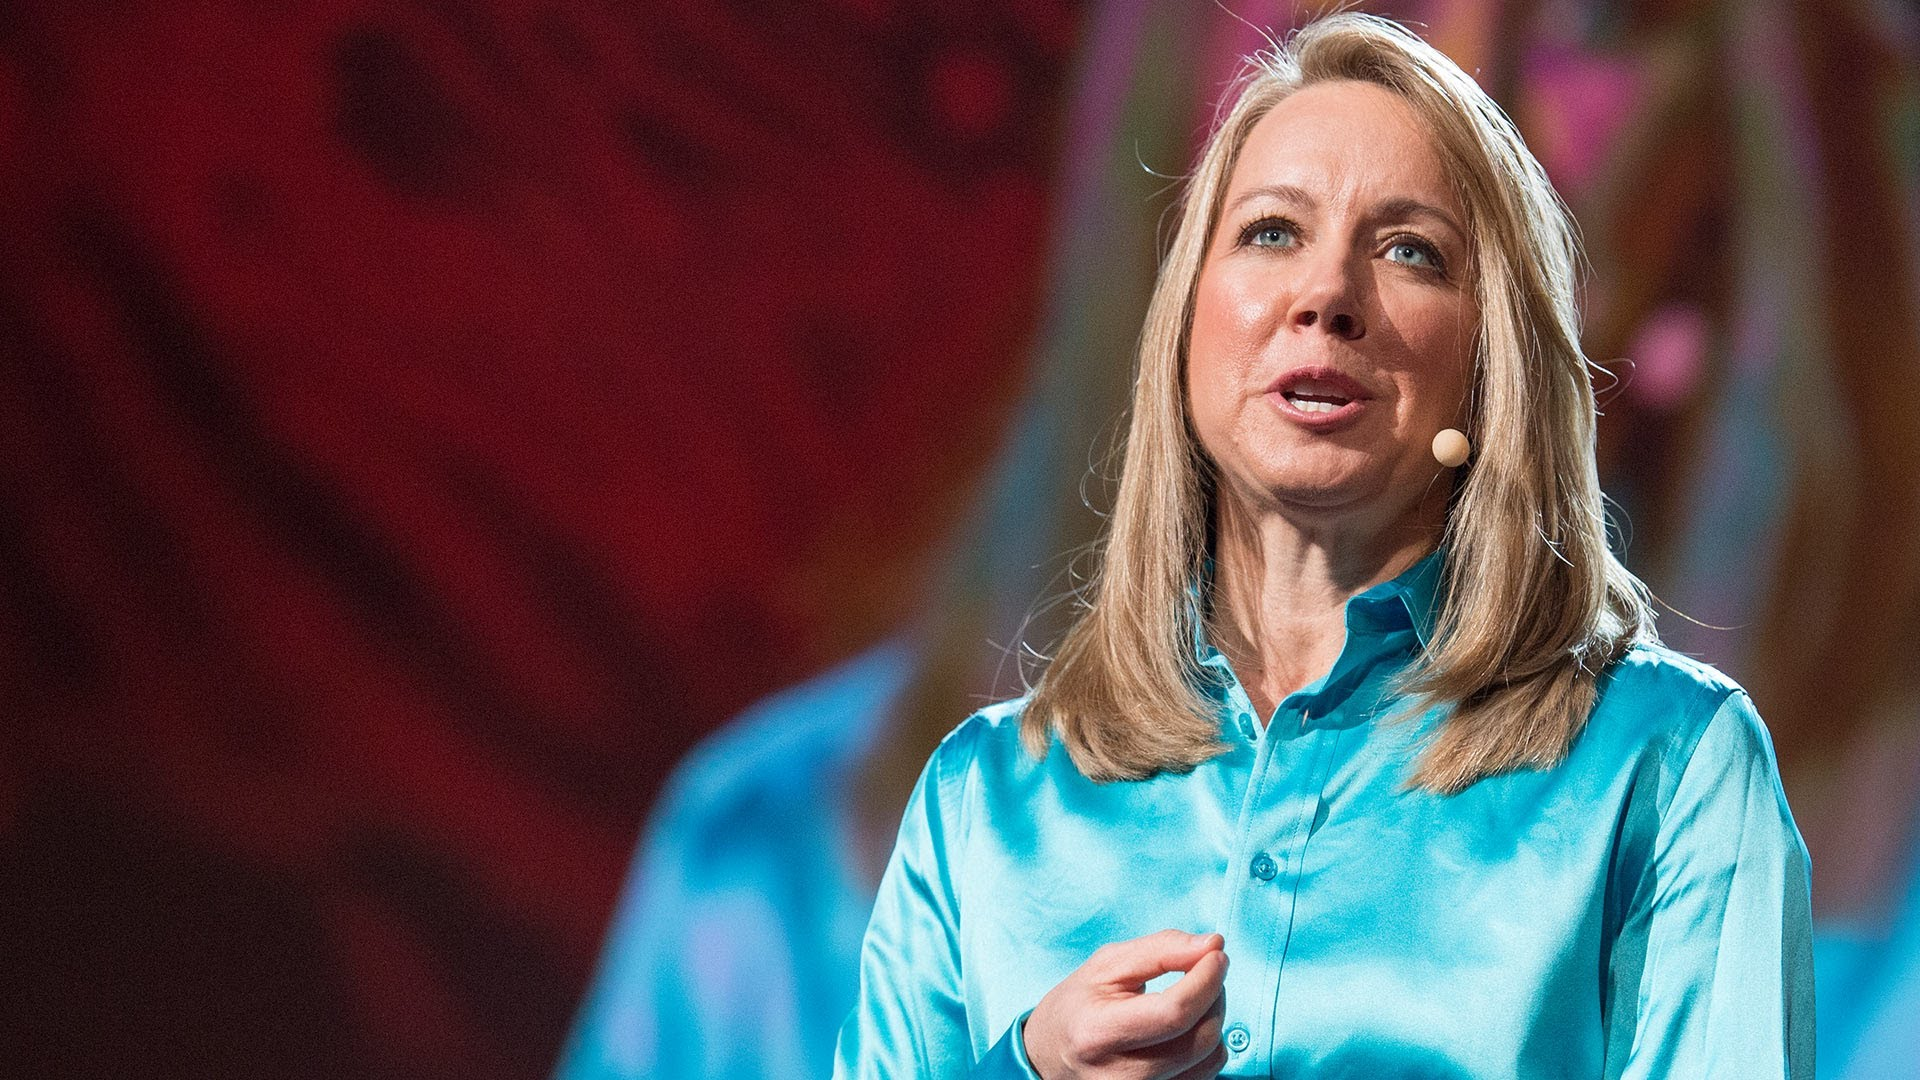 DR MEG JAY EXPLAINS 'WHY YOUR 20'S ARE SO IMPORTANT' IN THIS POWERFUL TED TALK!